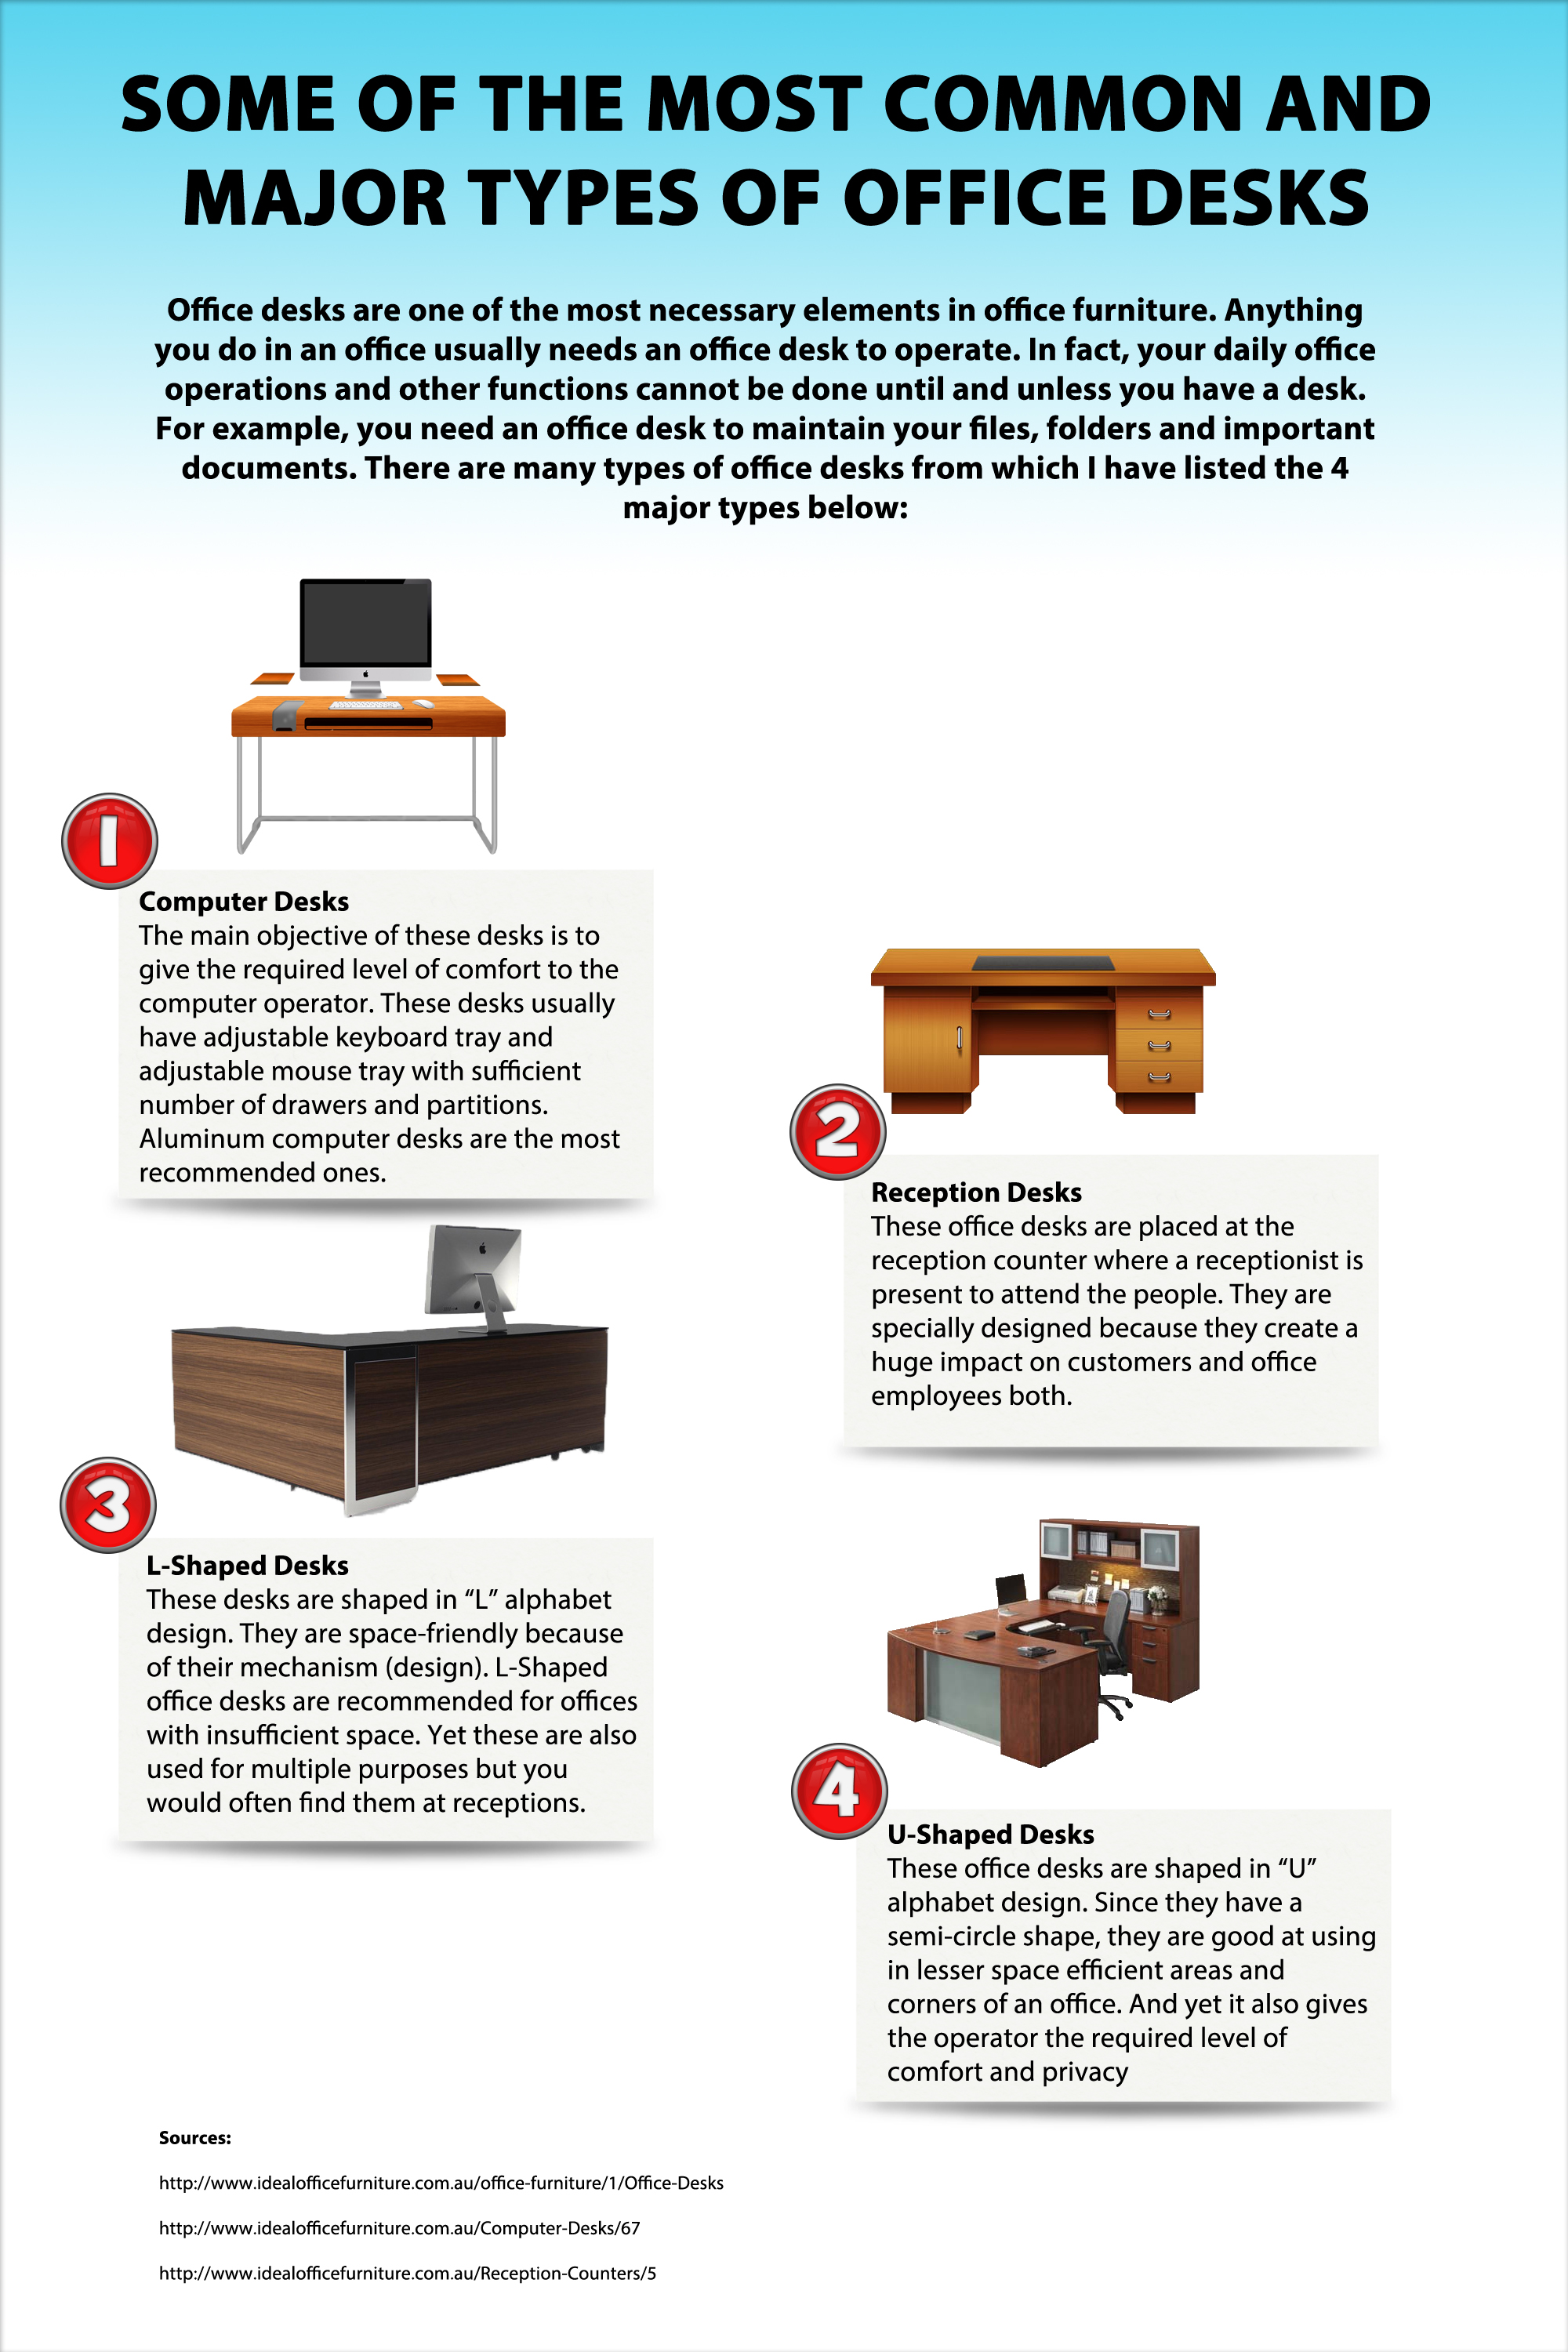 Types Of Desks Prepossessing Some Of The Most Common And Major Types Of Office Desks  Visual.ly Design Decoration